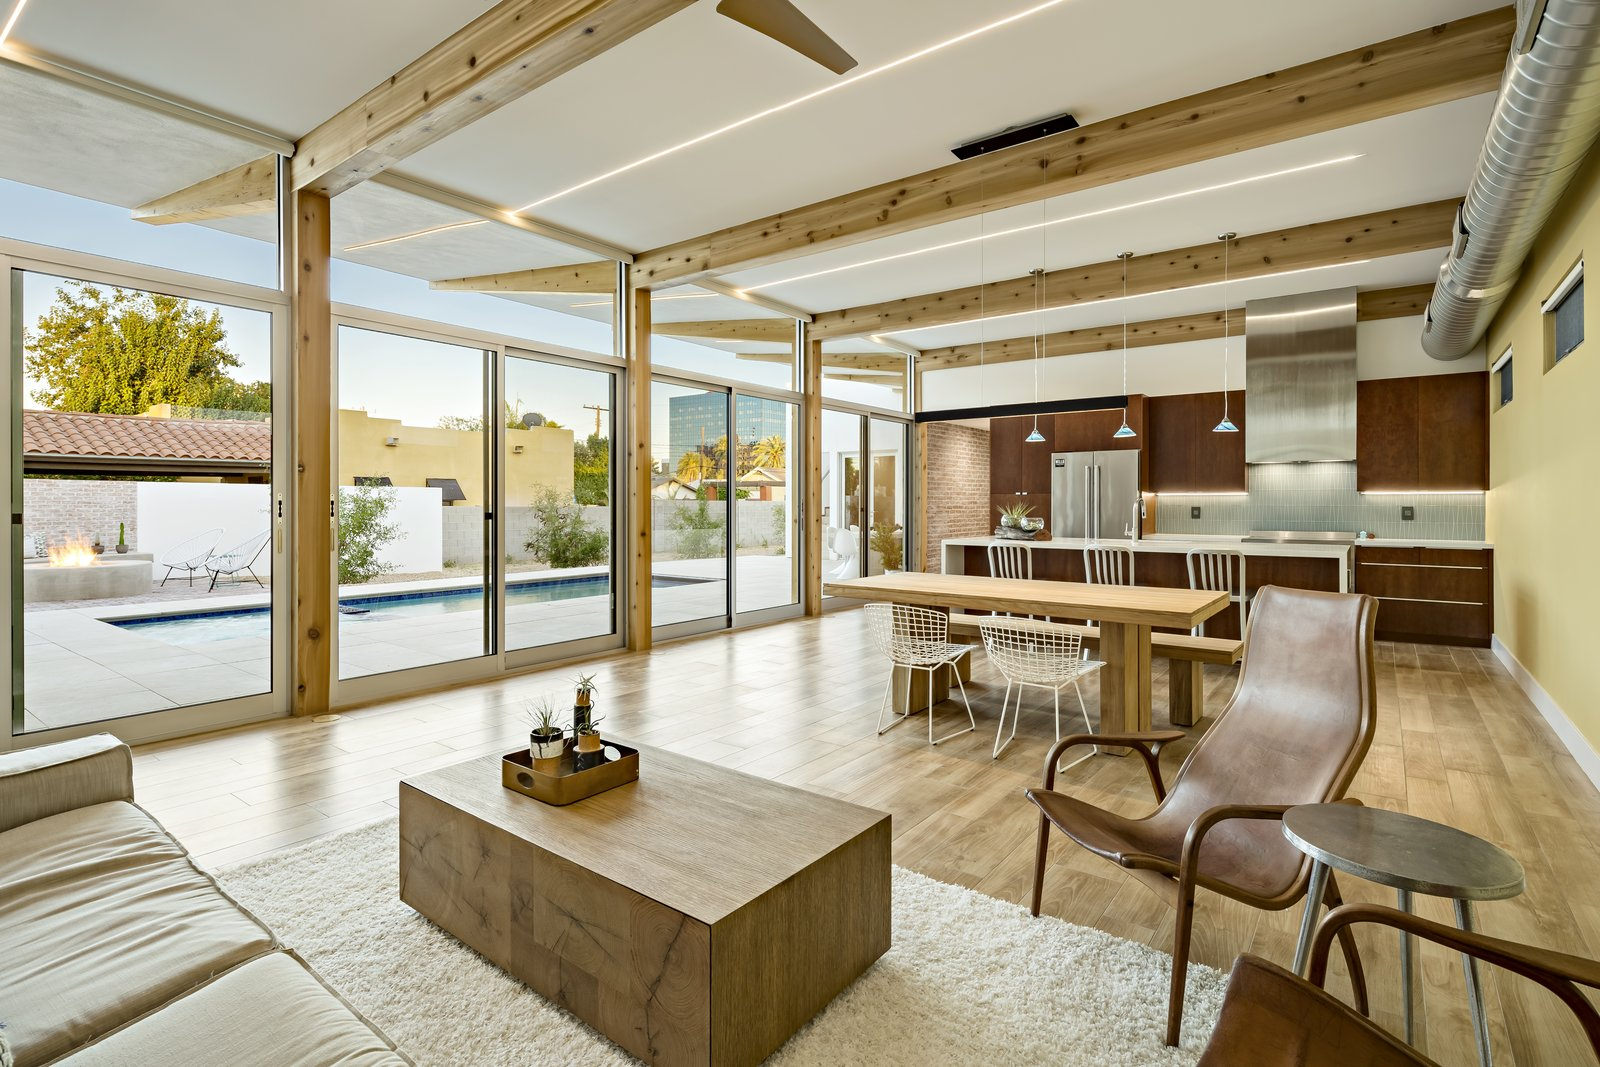 The focus of the great room was to connect with the outside patio. The sliding patio doors on the left and high windows on the right open up to create a nice cross breeze, cooling the house.